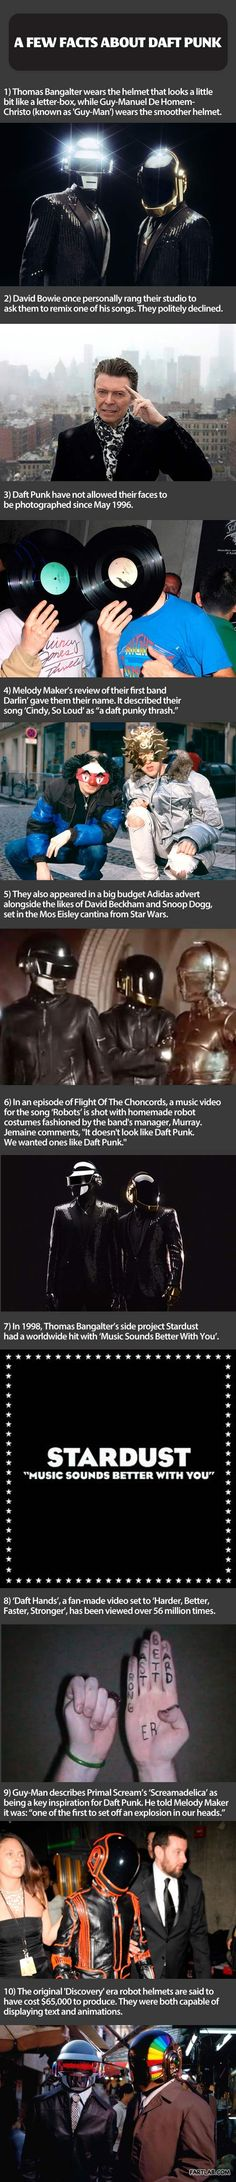 Some facts about Daft Punk…